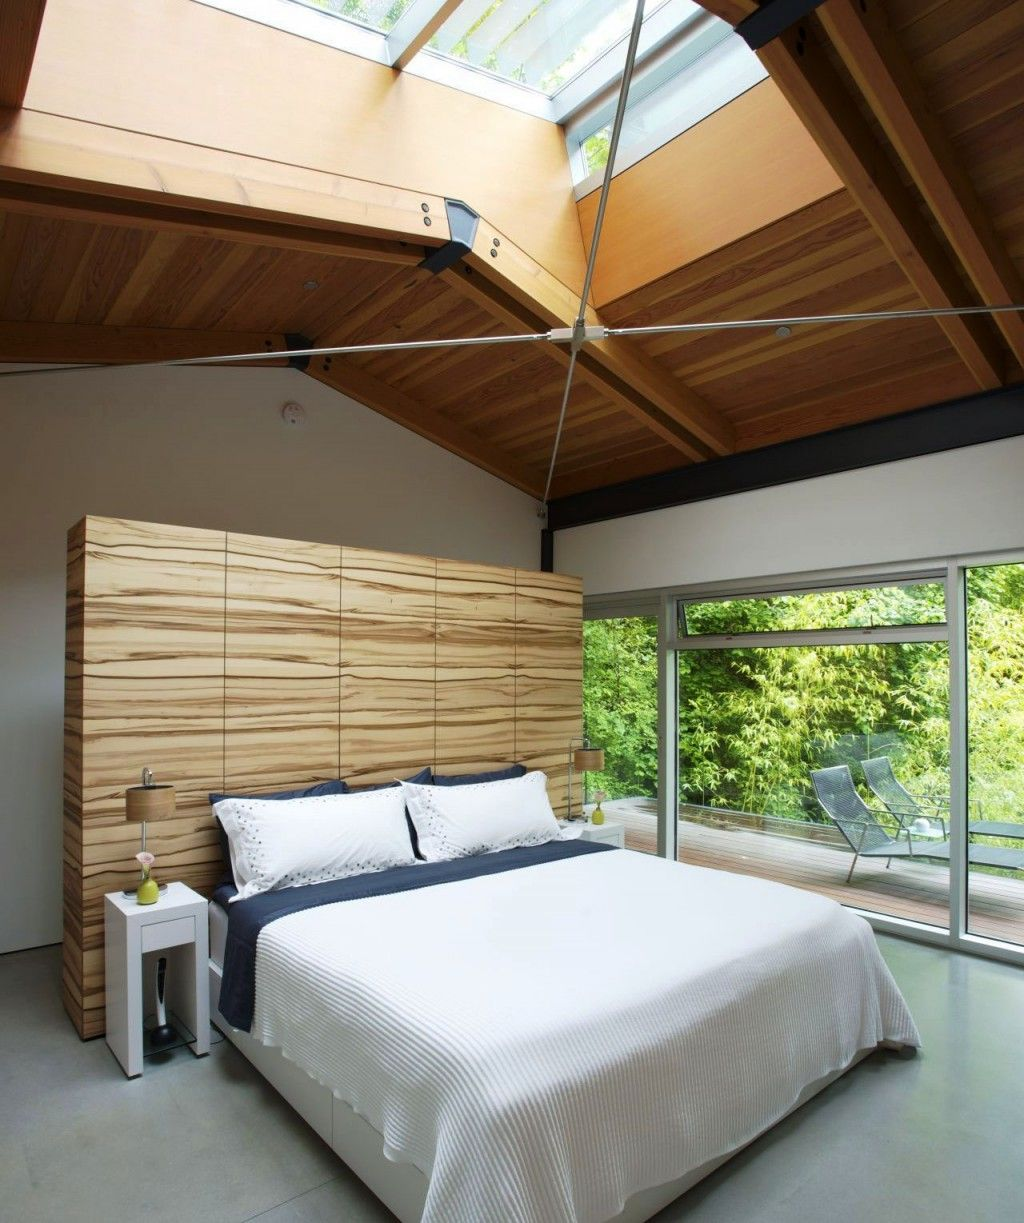 Architecture Modern Plush Bedroom Design With Large Glass Windows And Japanese Maples Accents